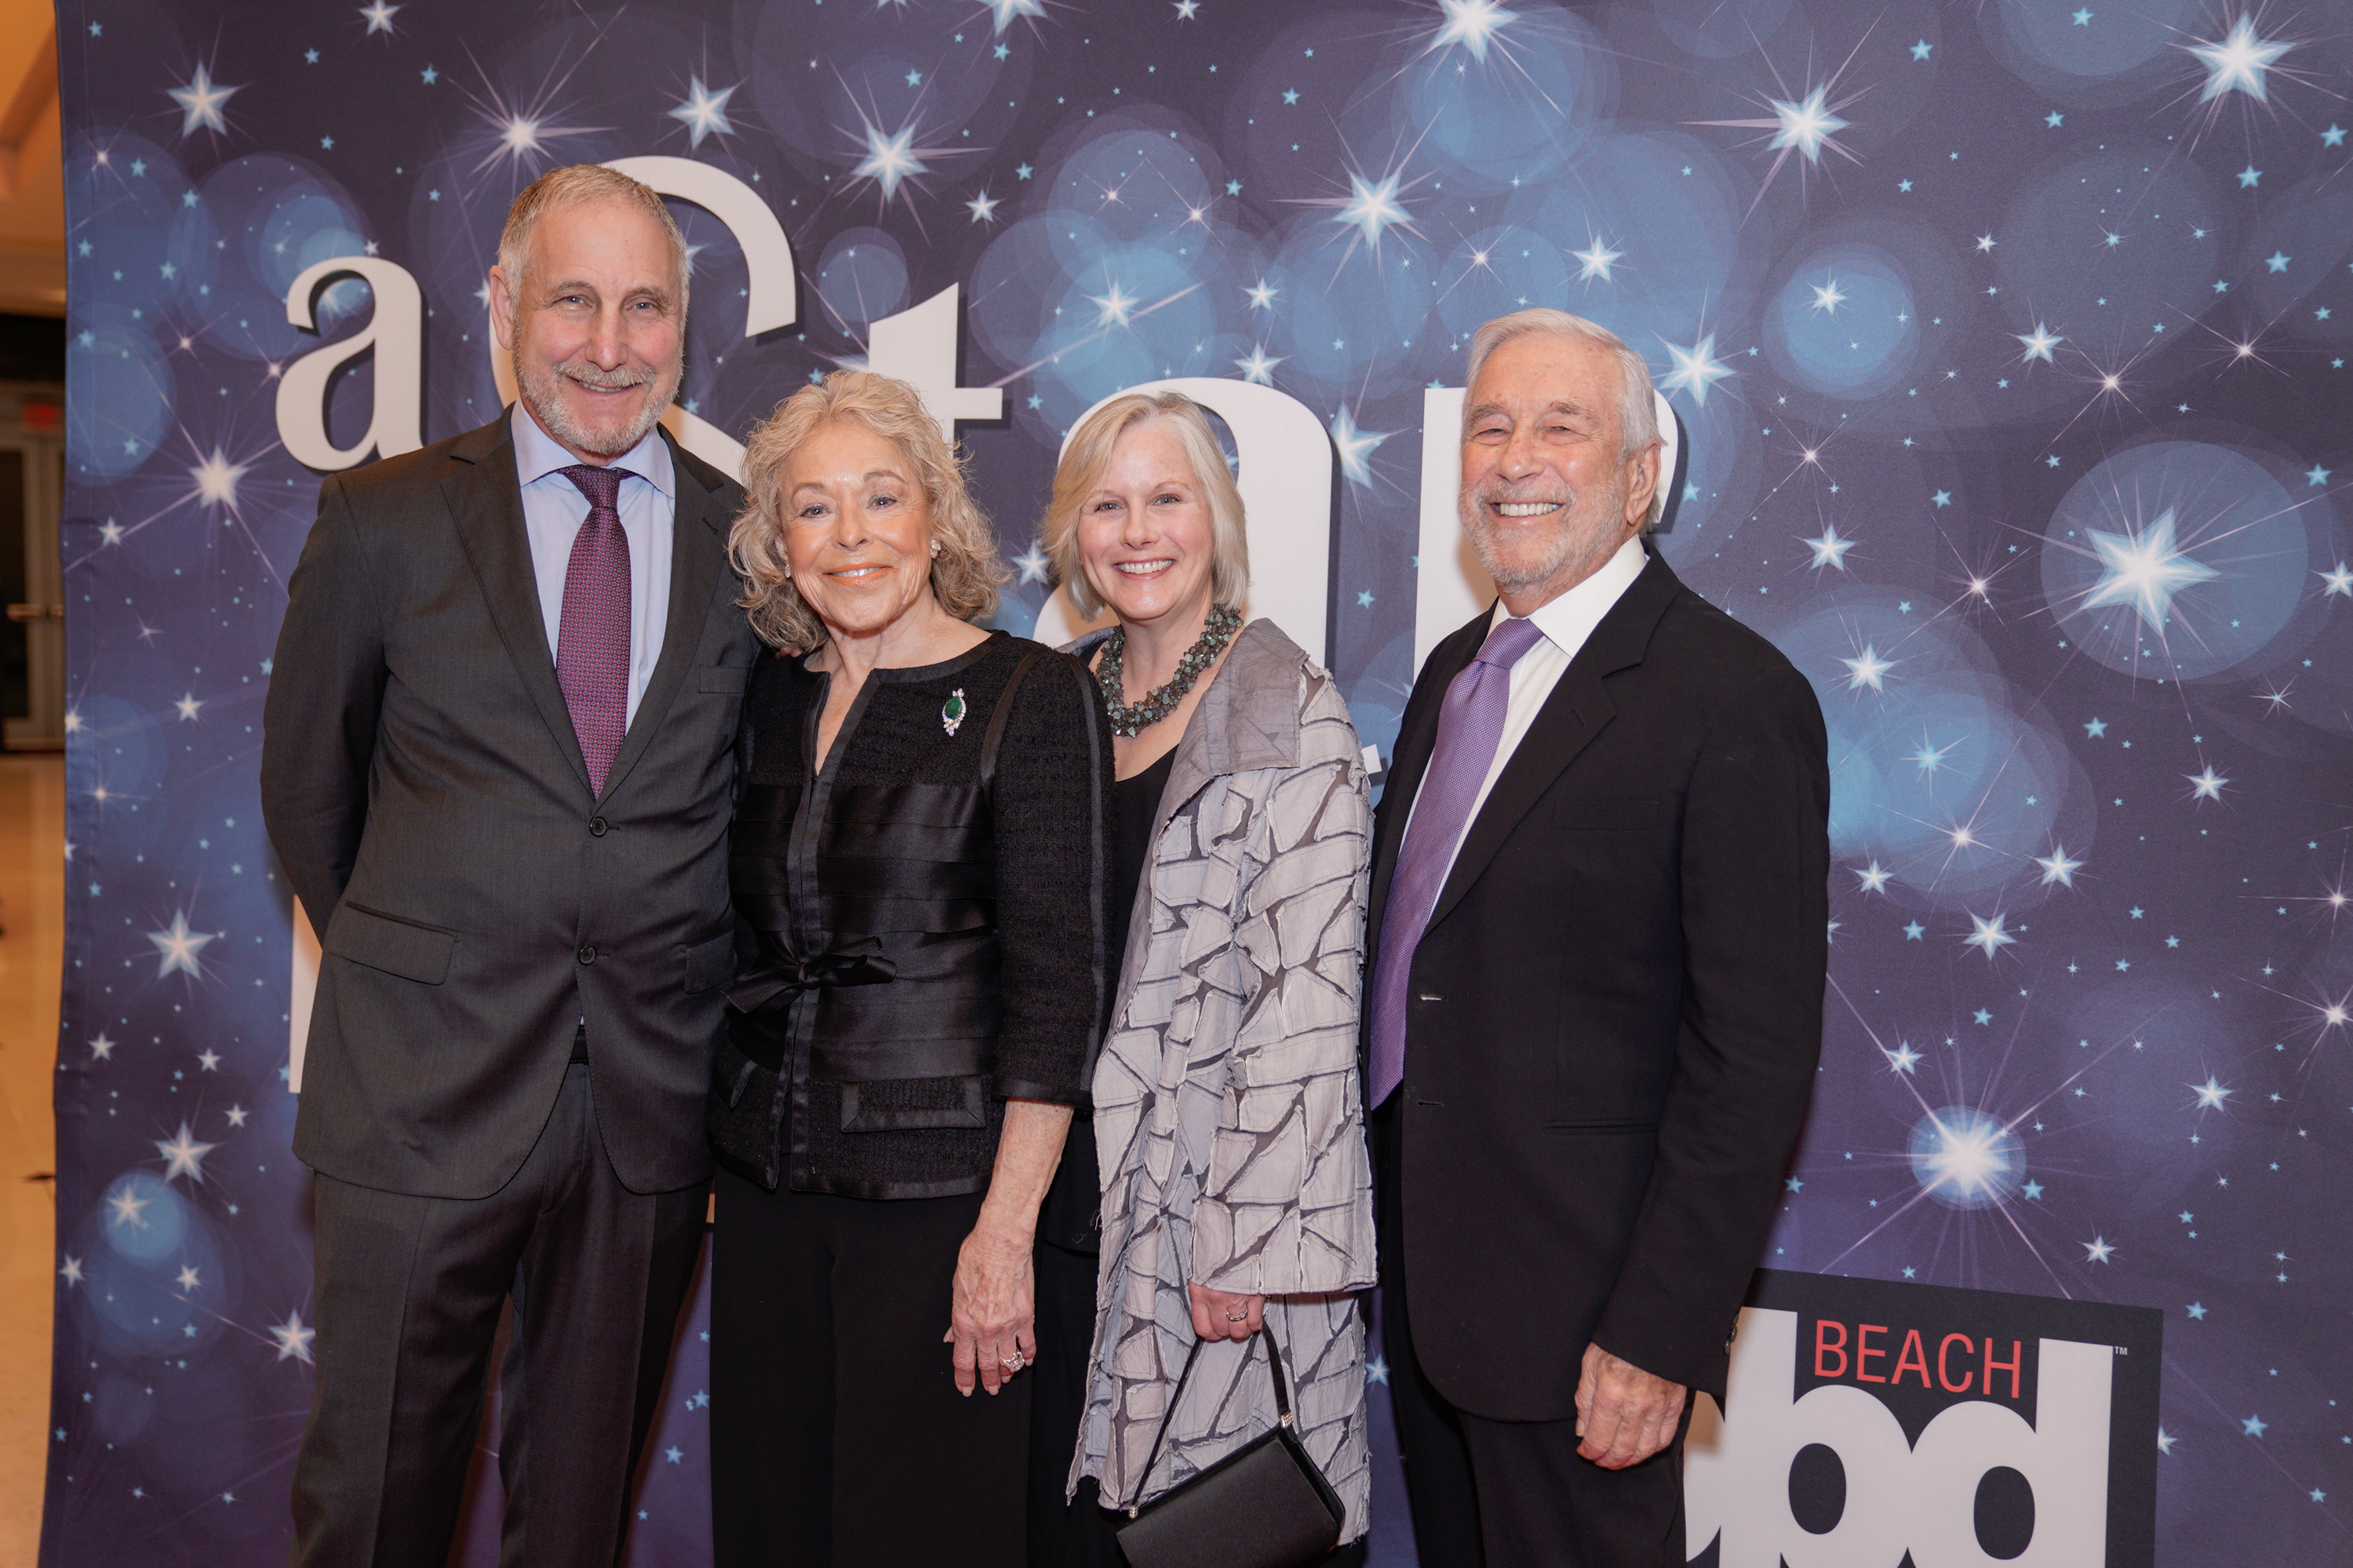 20th Annual Gala - Tom Meyerhoff, Marilyn Meyerhoff, Cynthia Volk and Sam Feldman